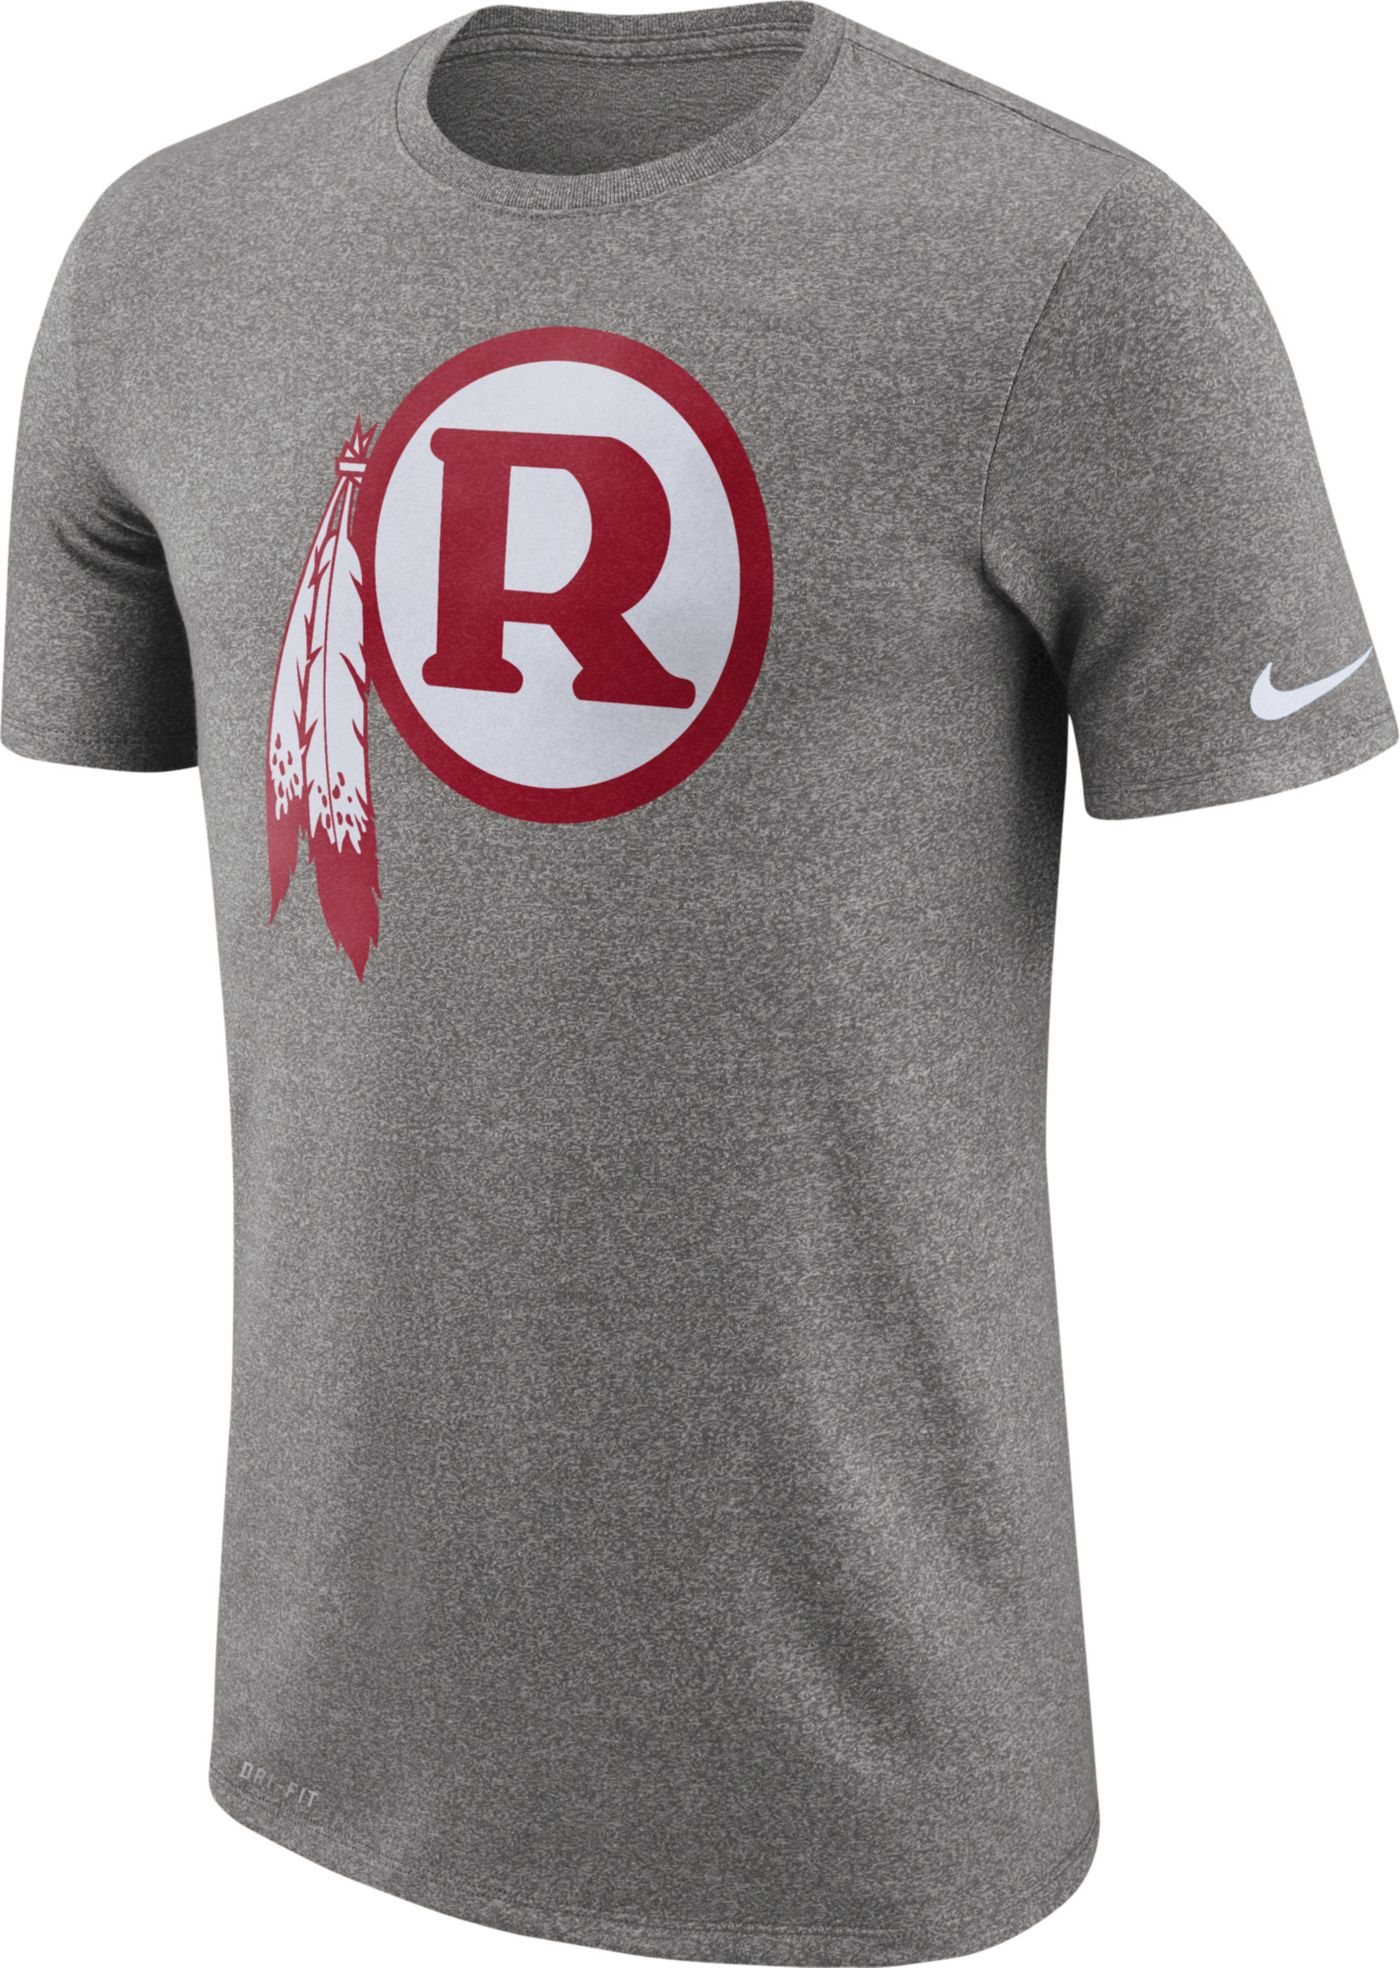 Nike Men's Washington Redskins Marled Historic Performance Grey T-Shirt